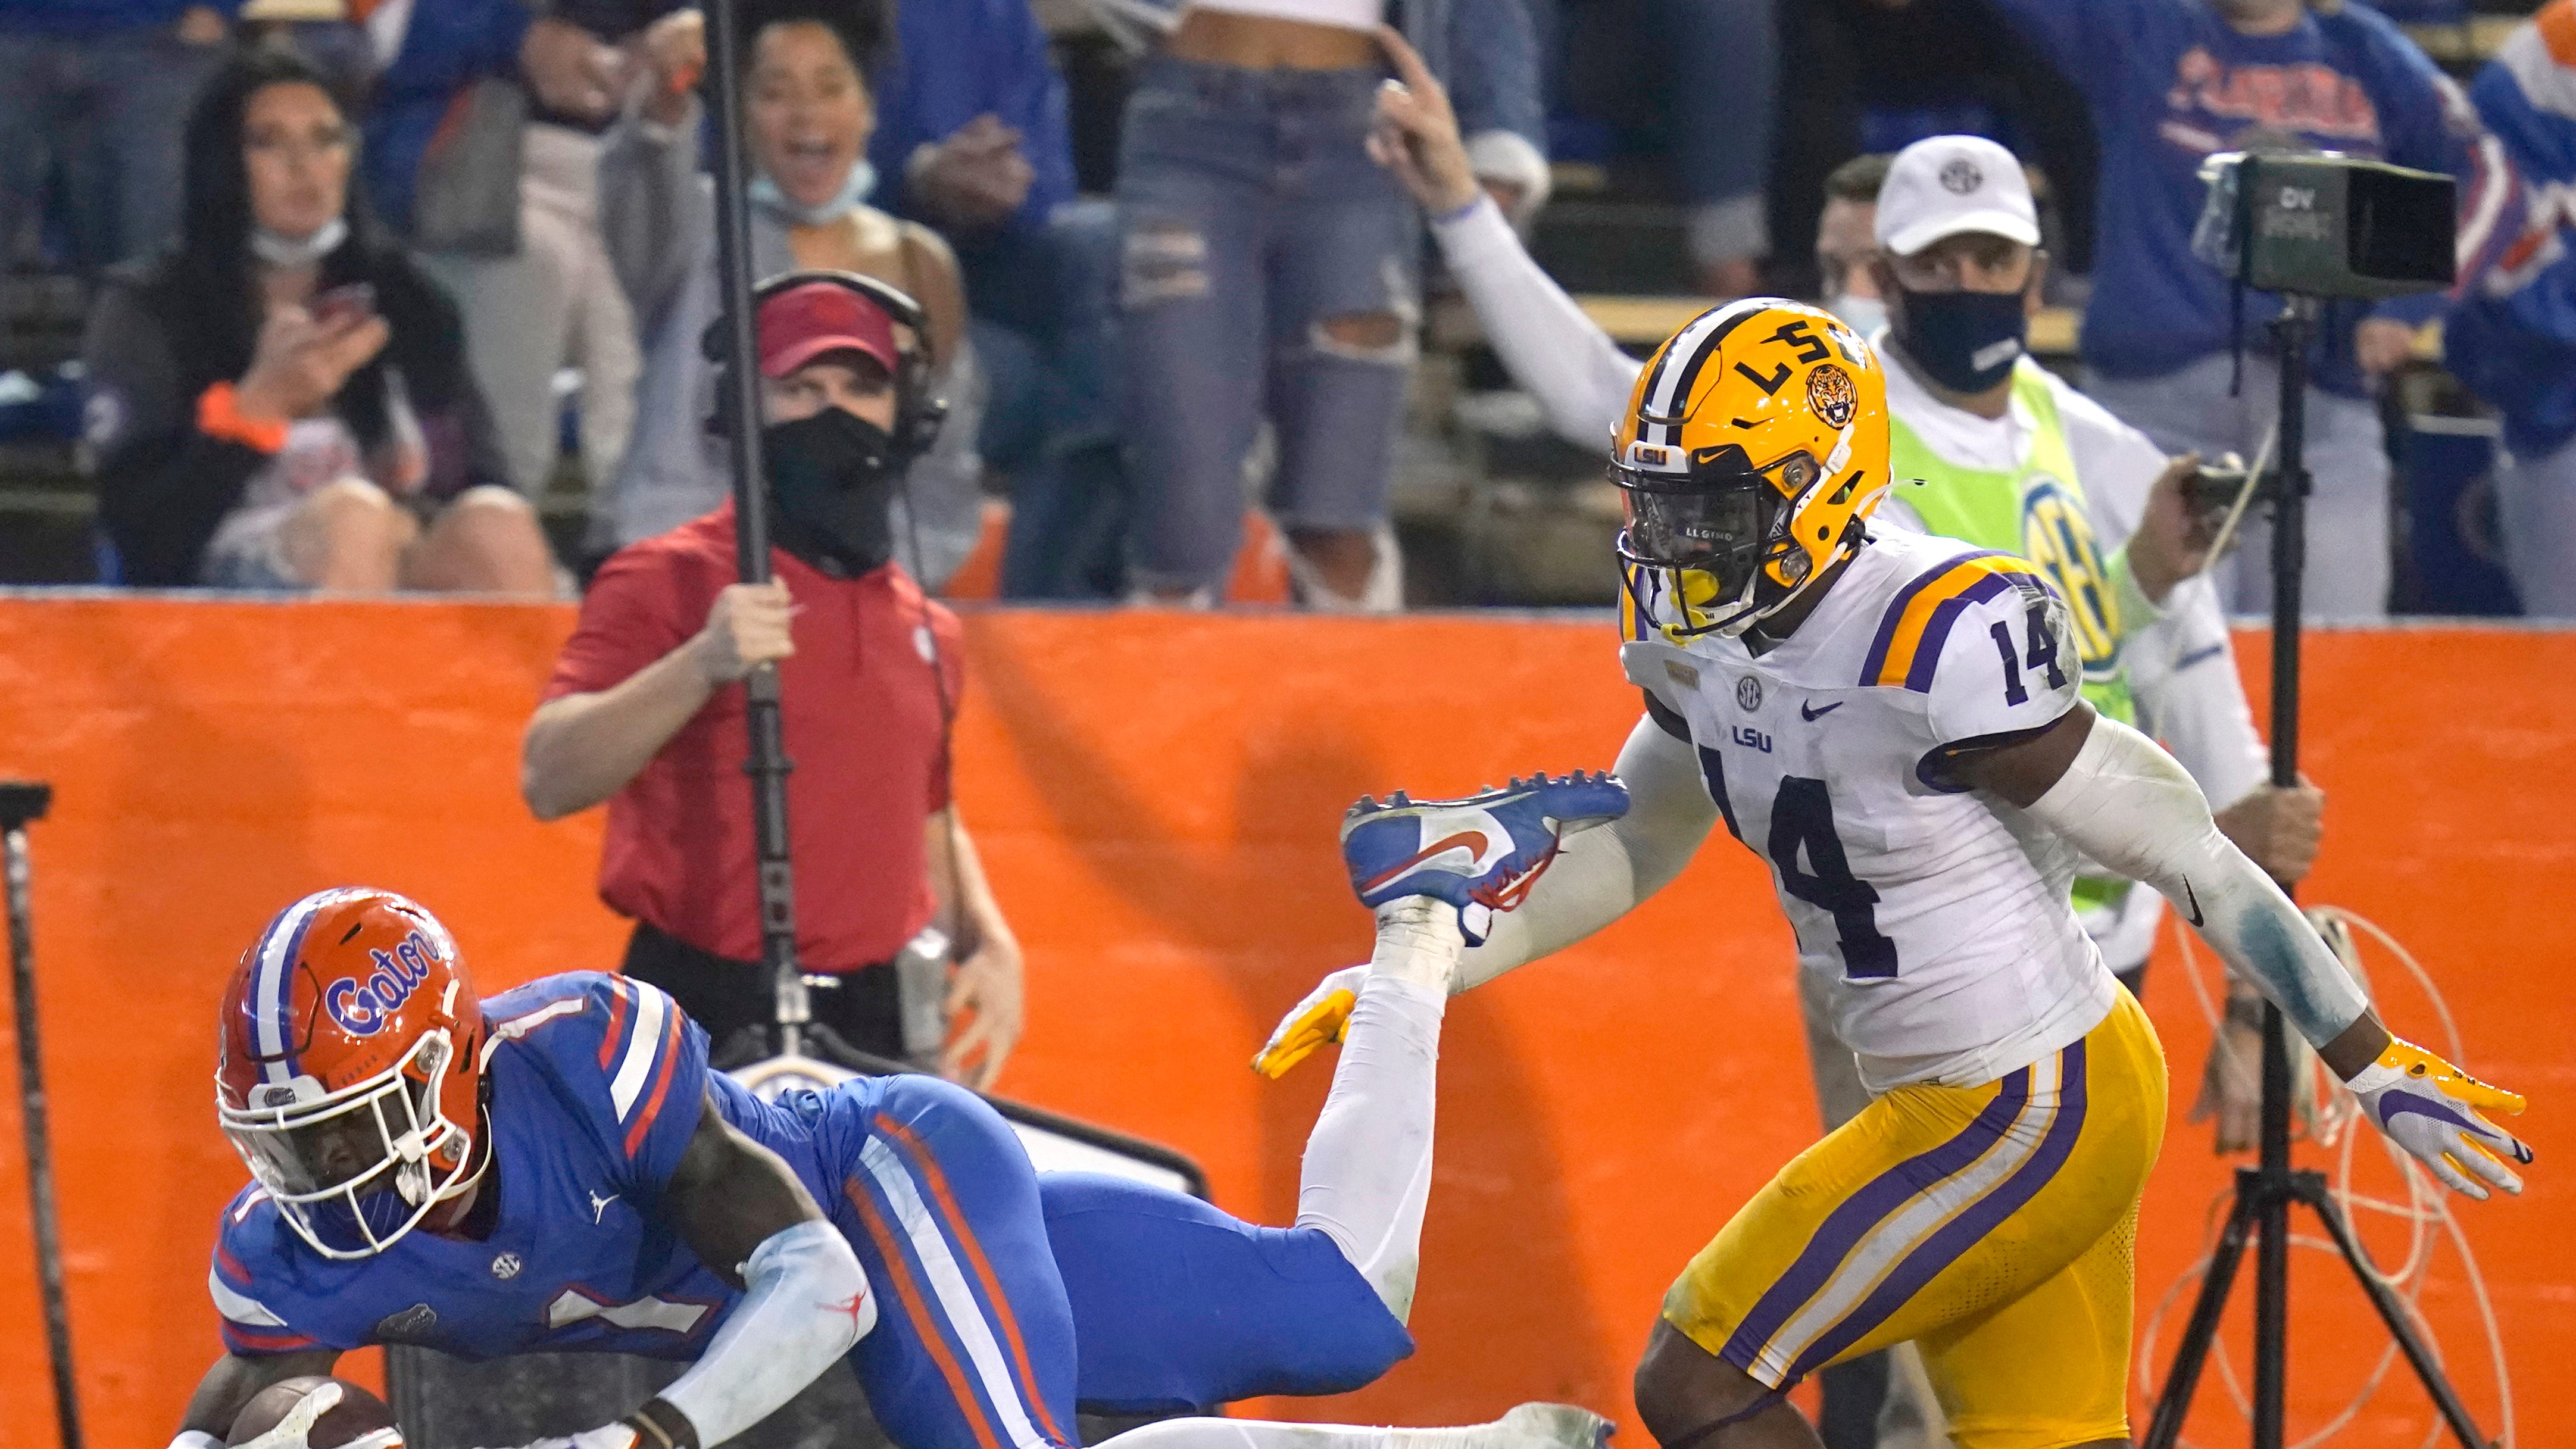 Florida wide receiver Kadarius Toney (1) is pushed out of bounds by LSU safety Maurice Hampton Jr. (14) after Toney caught a pass for a 49-yard gain during the second half of an NCAA college football game Saturday, Dec. 12, 2020, in Gainesville, Fla.